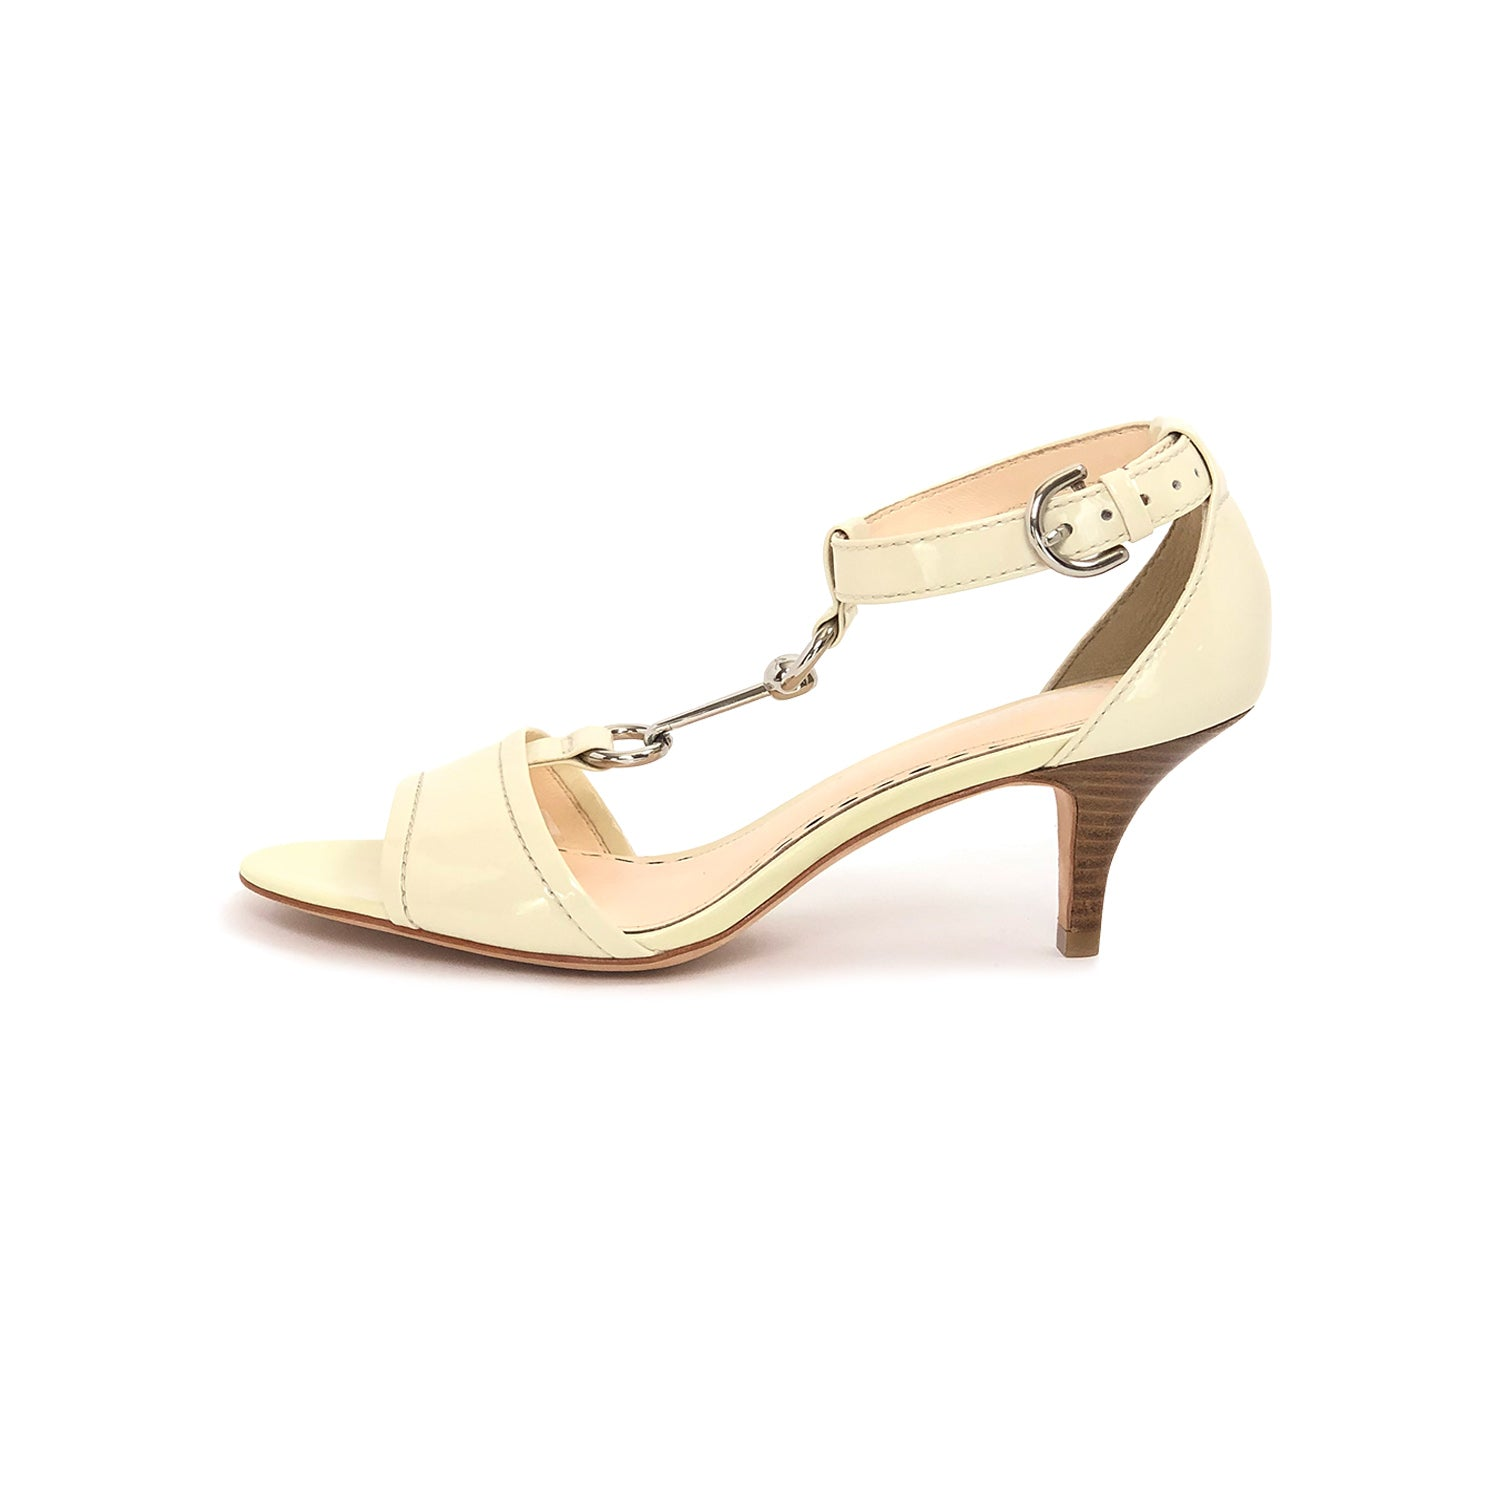 ladiesoflux - Coach Inez Patent T-Strap Sandal Ivory, Size 7B - Ladies Of Lux - Shoes